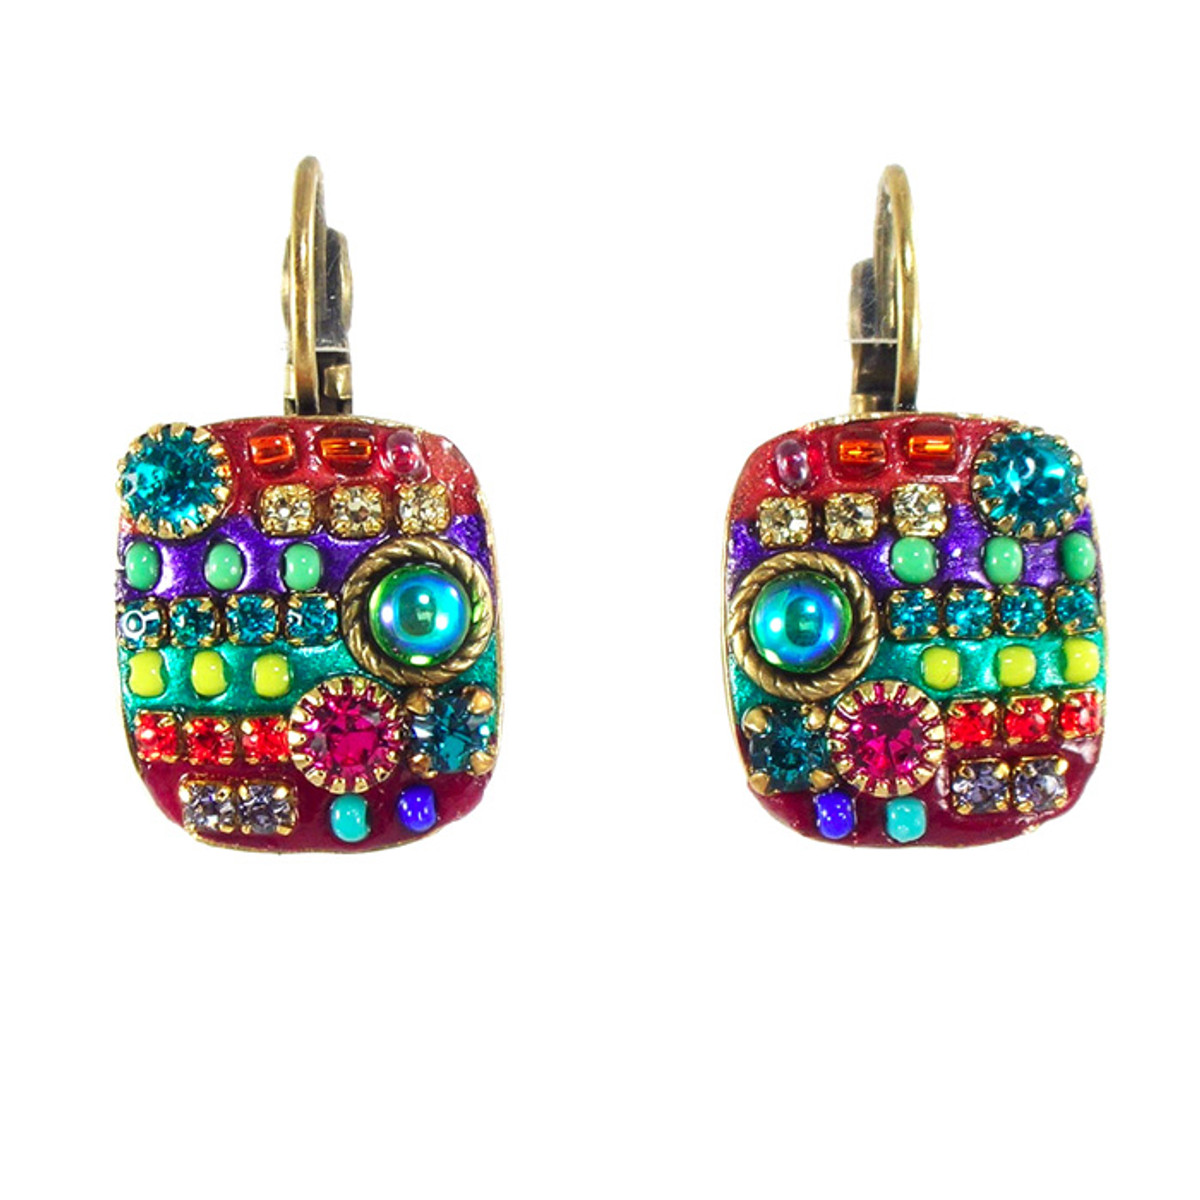 Michal Golan Earrings - Multibright  square